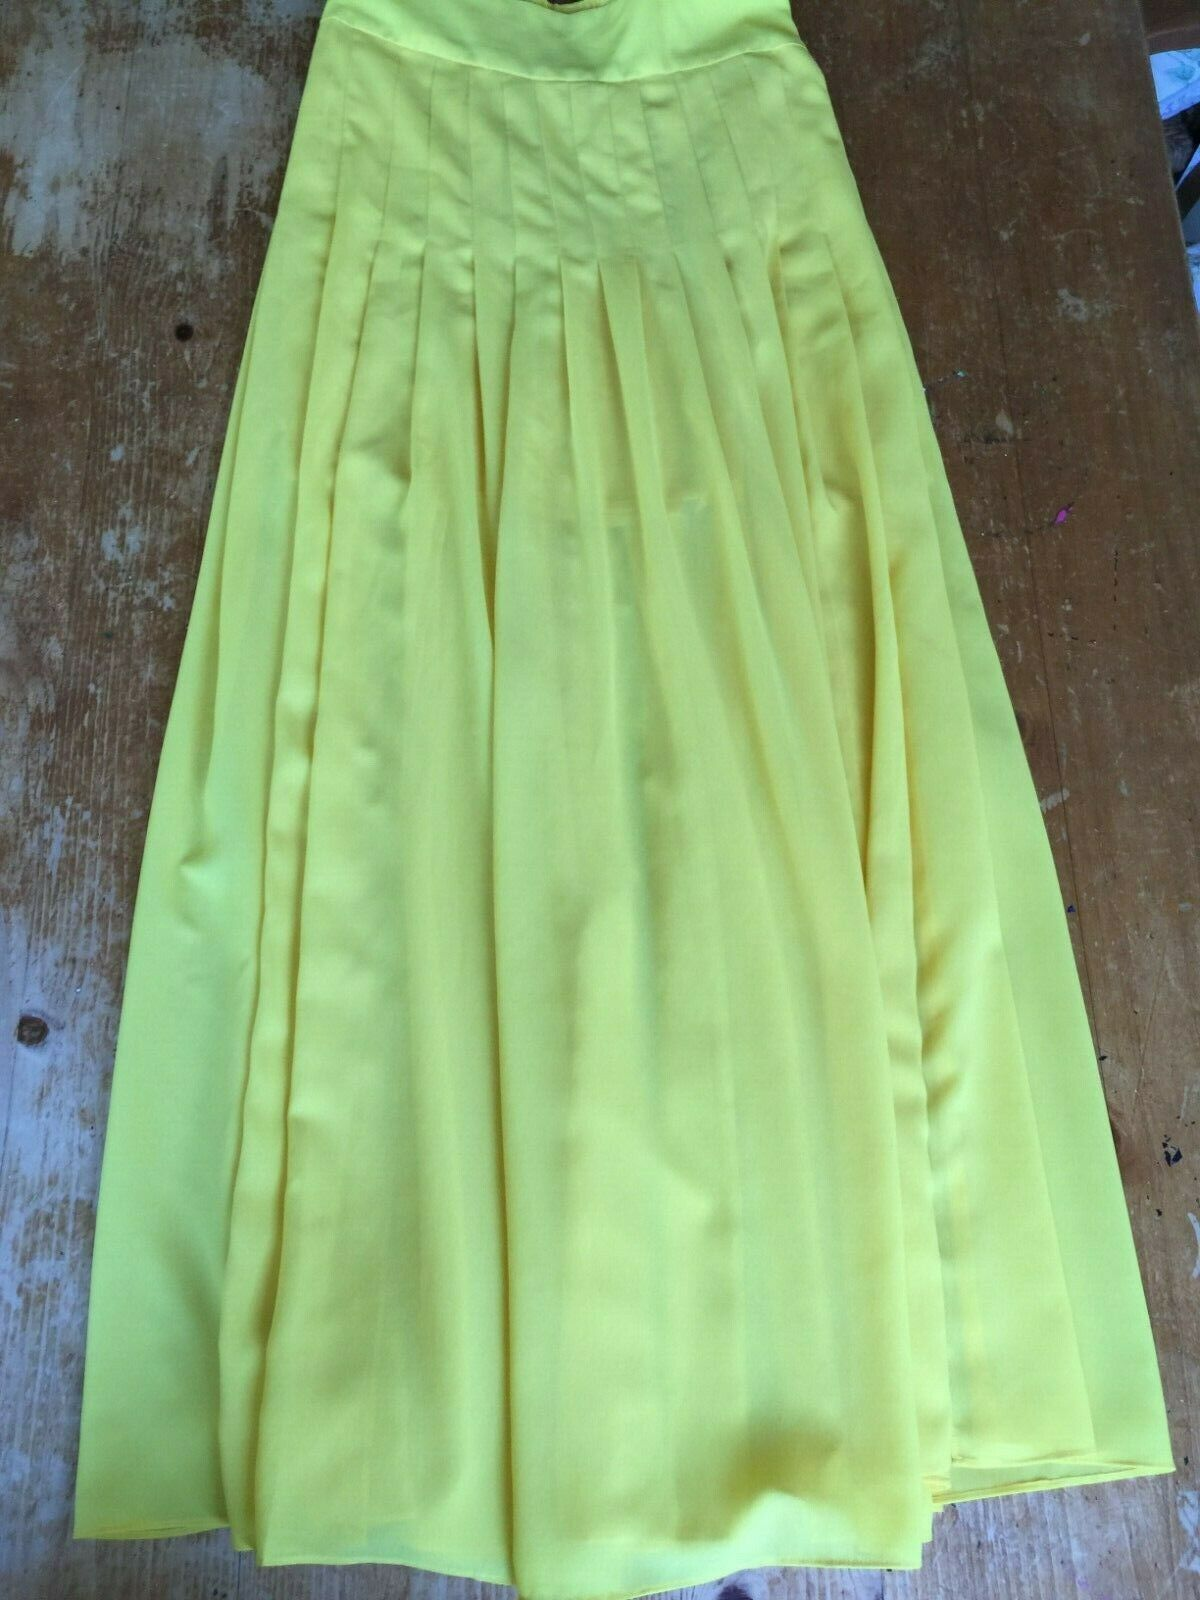 Maeve Anthropologie Women's Zocalo Maxi Skirt Yellow Long Pleated Small B23